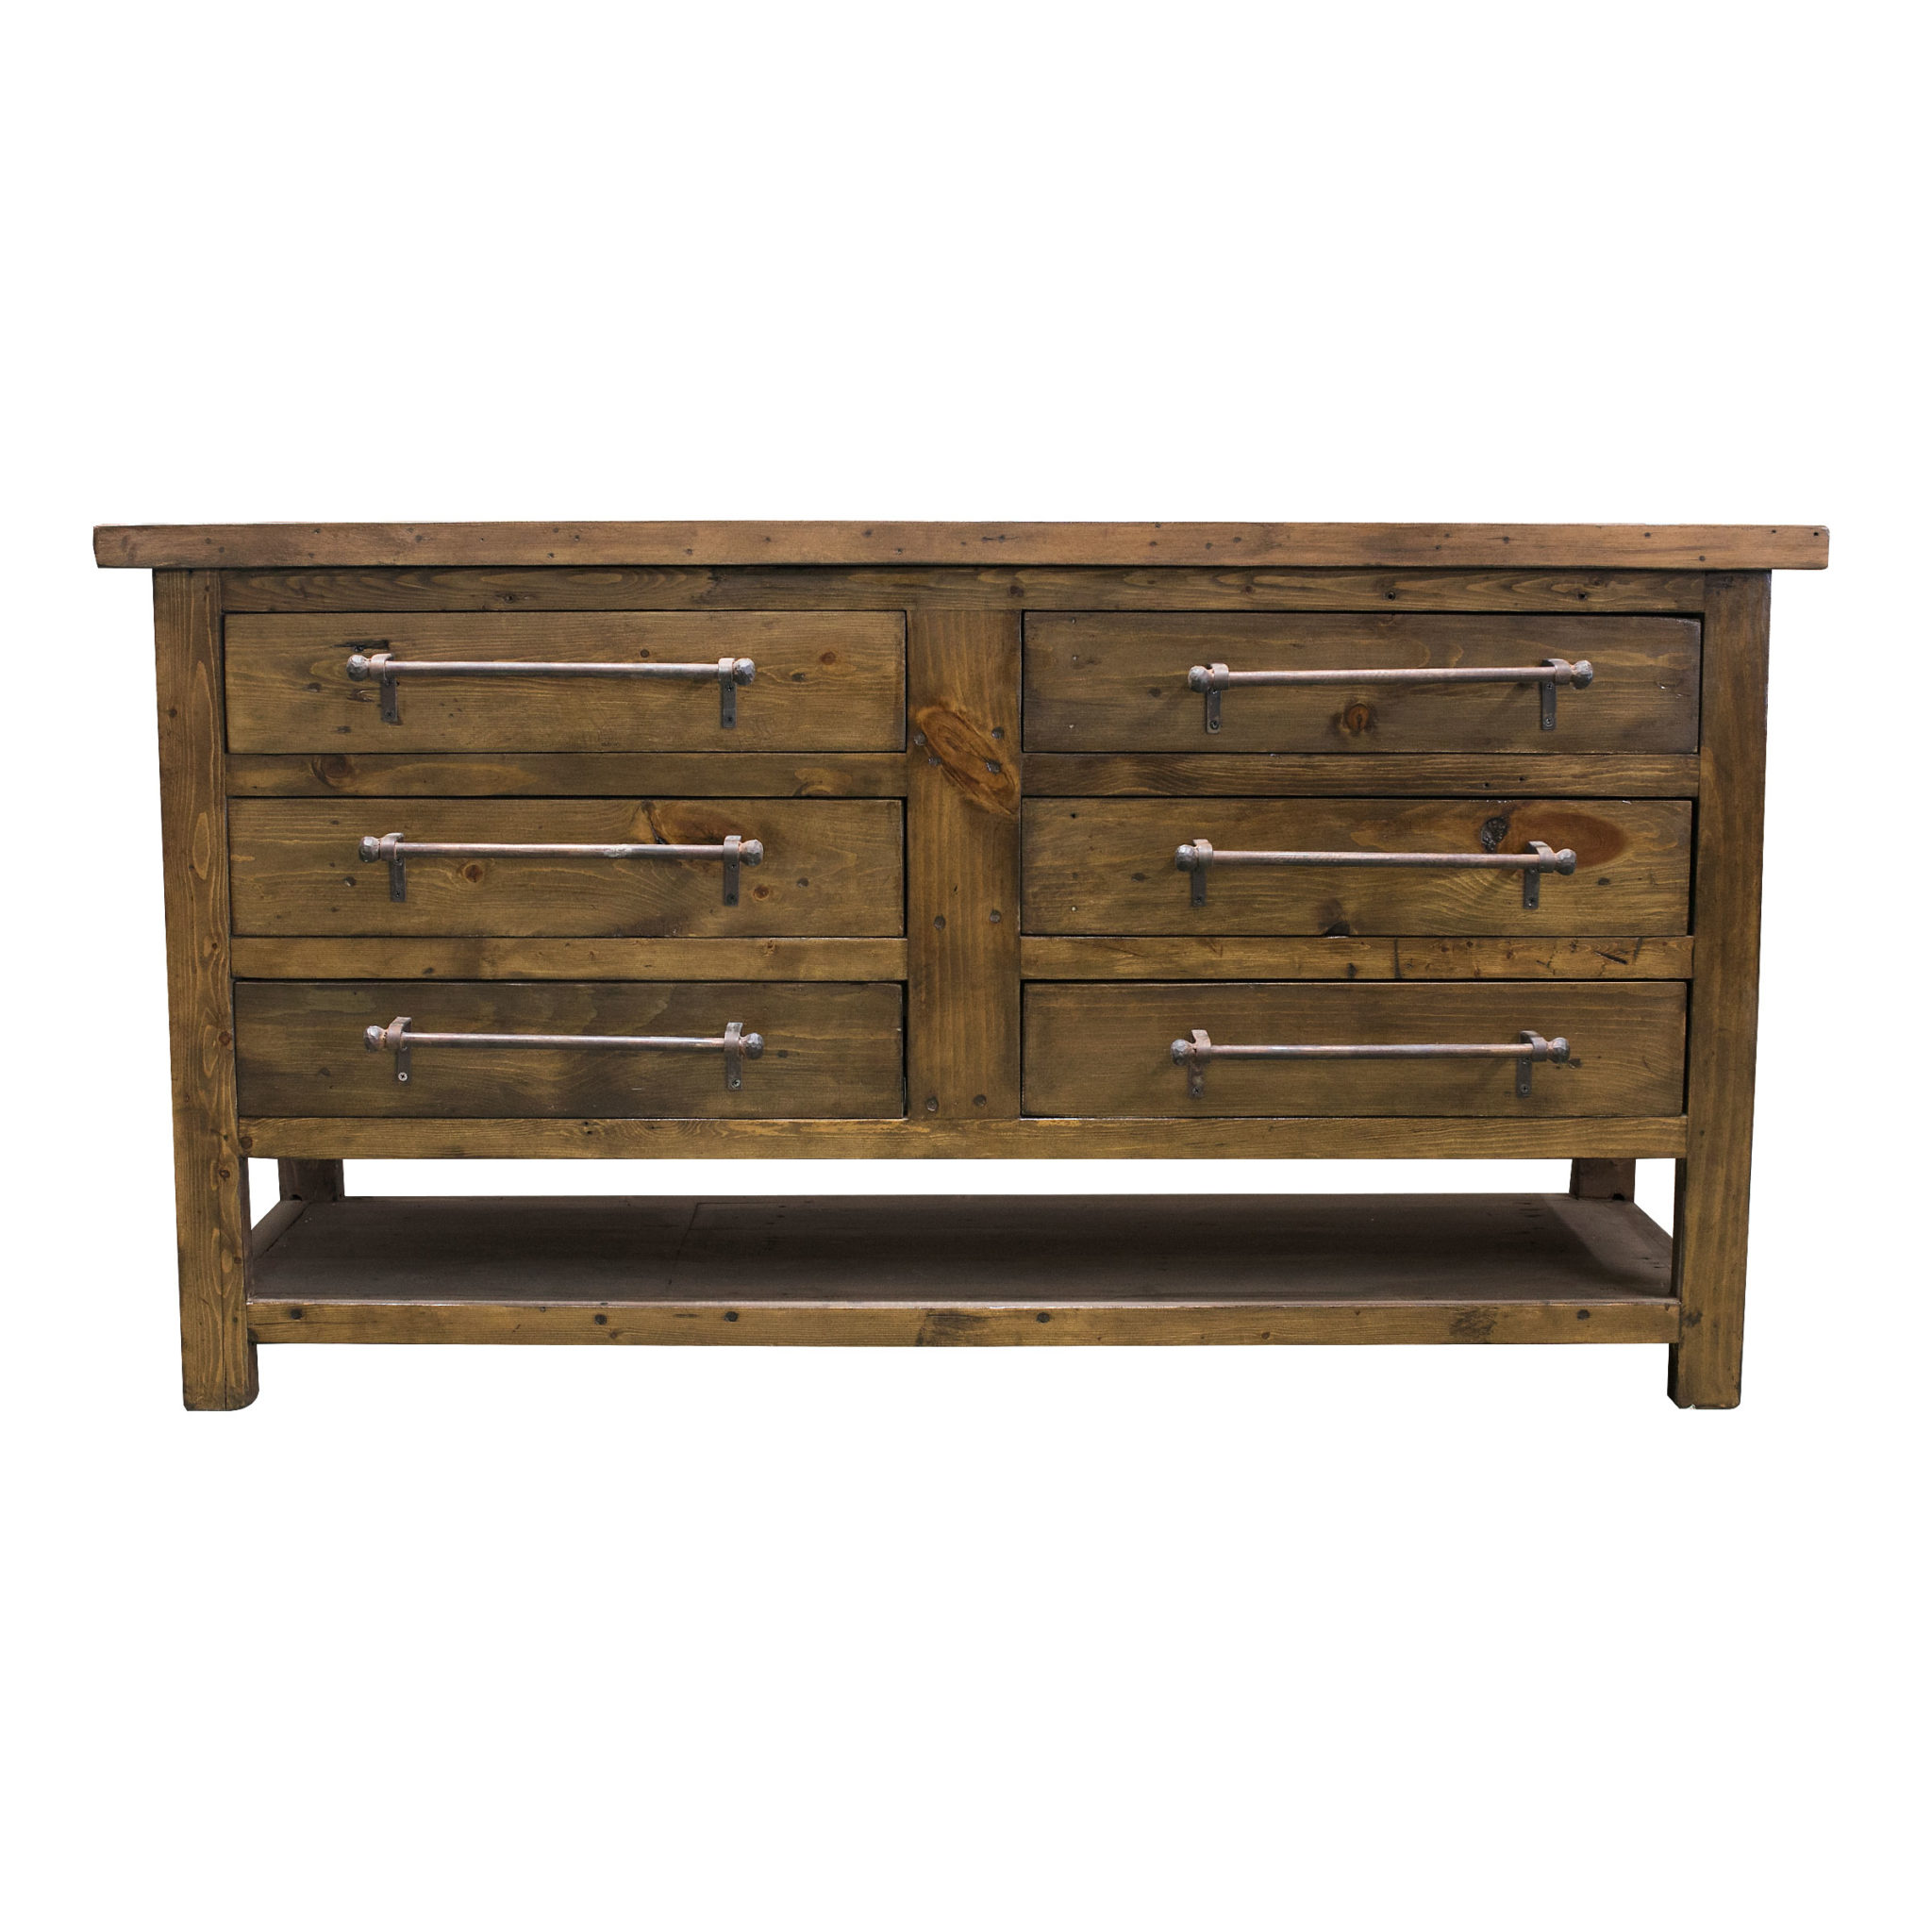 Buy Logan Rustic Bathroom Console line